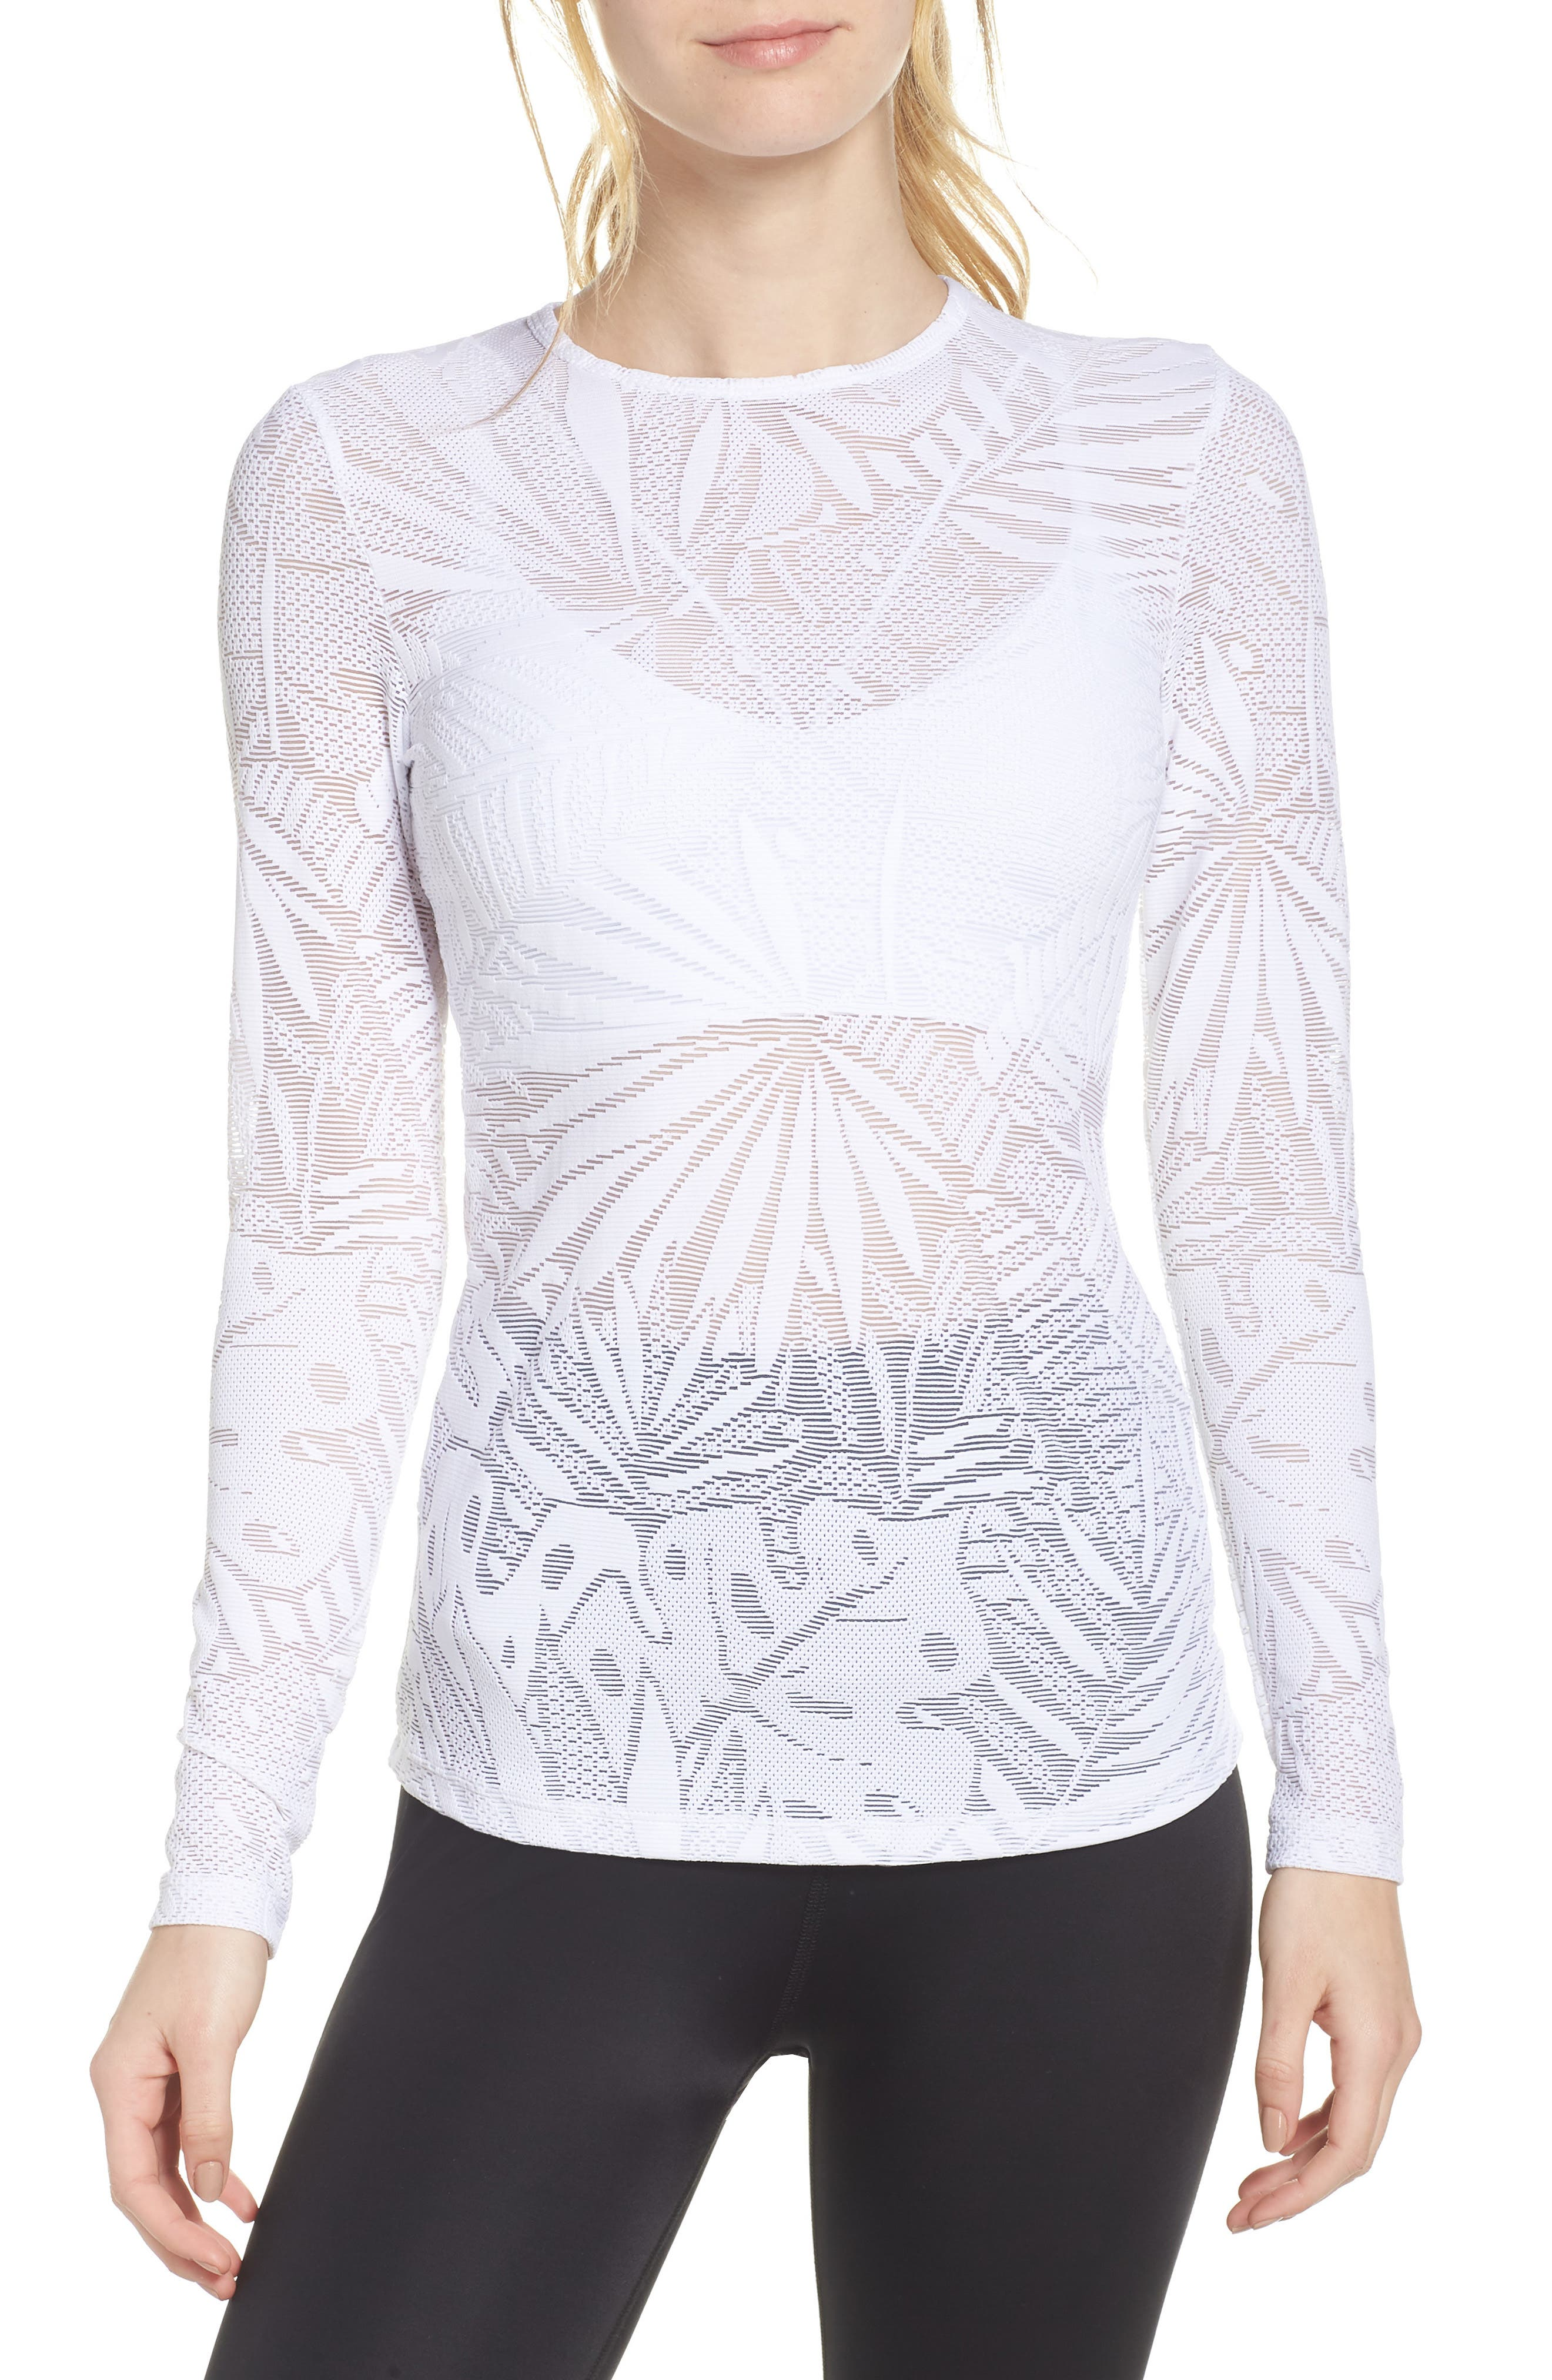 Oasis Mesh Pullover,                             Main thumbnail 1, color,                             White